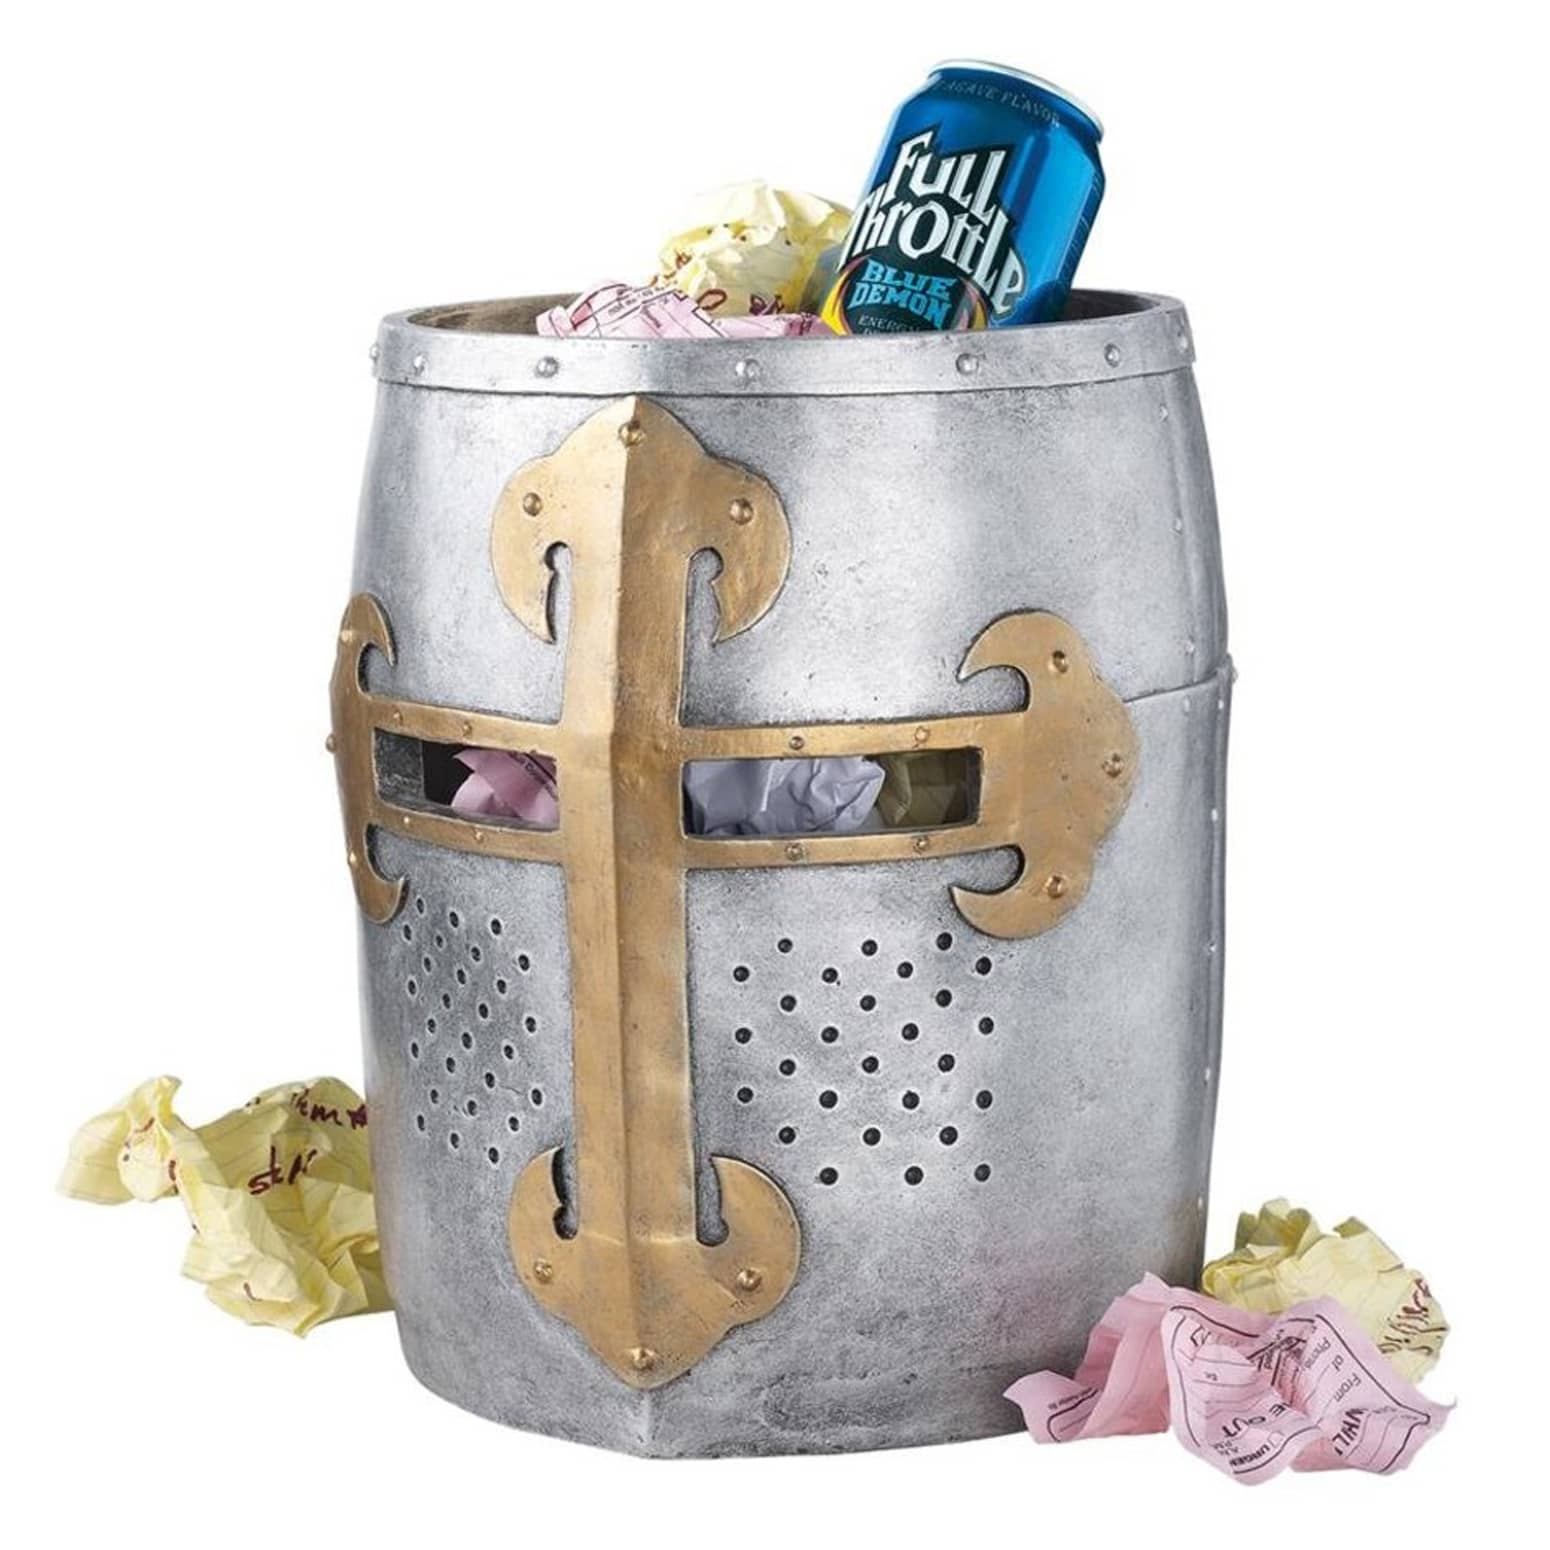 Crusader's Great Helm Gothic Trash Bin